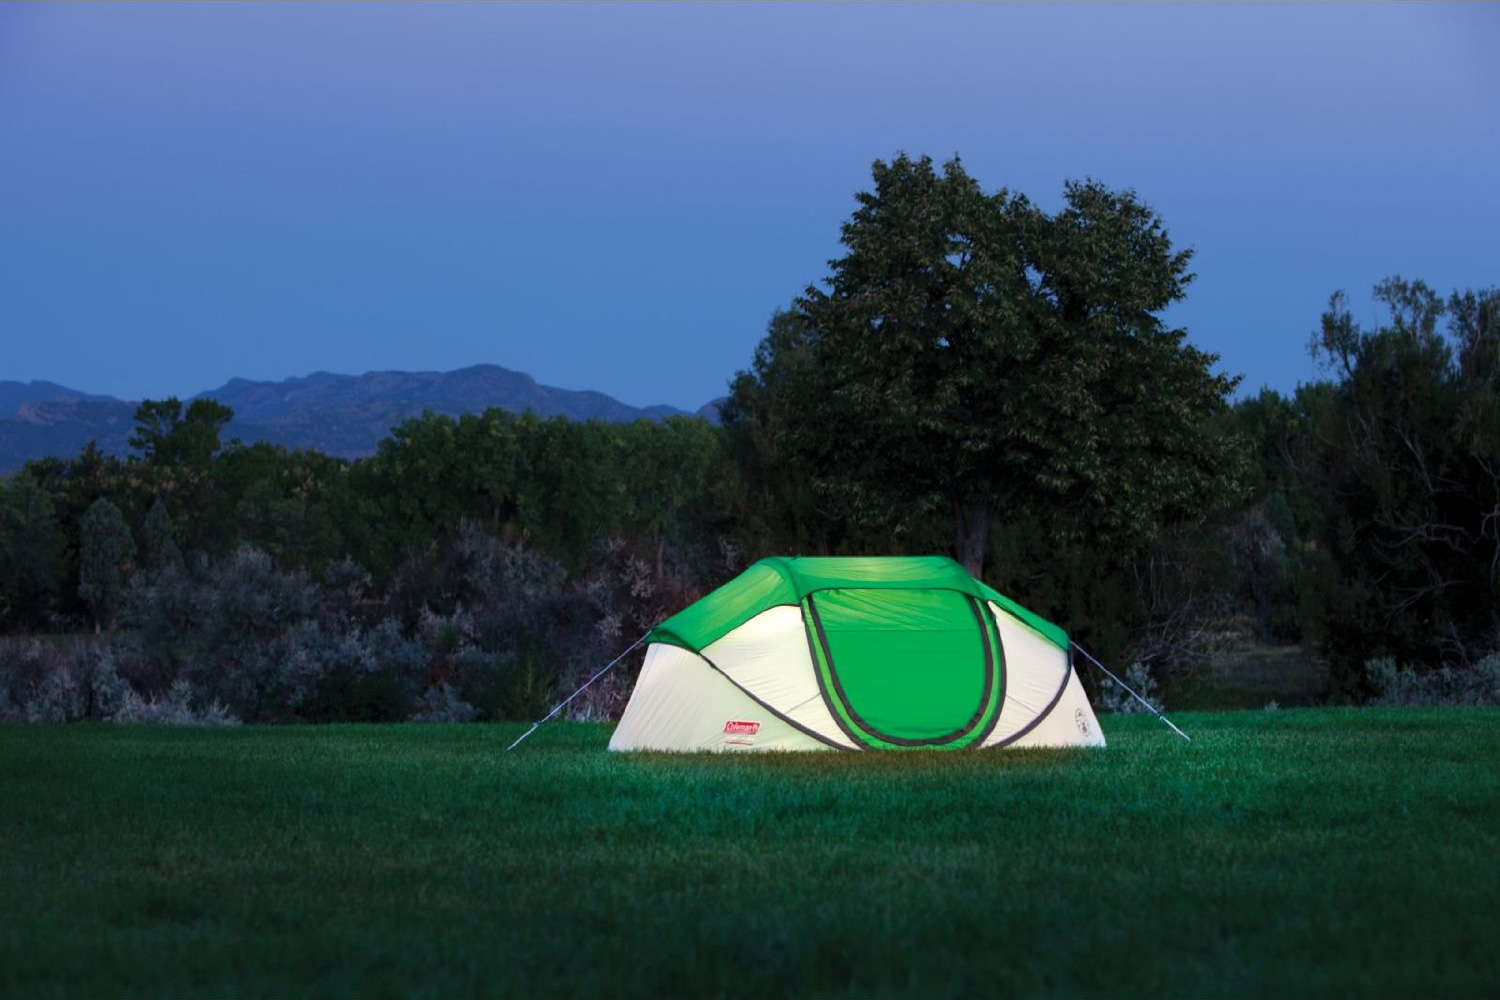 & Best Pop Up Tent For Camping: 5 Instant Tent Reviews